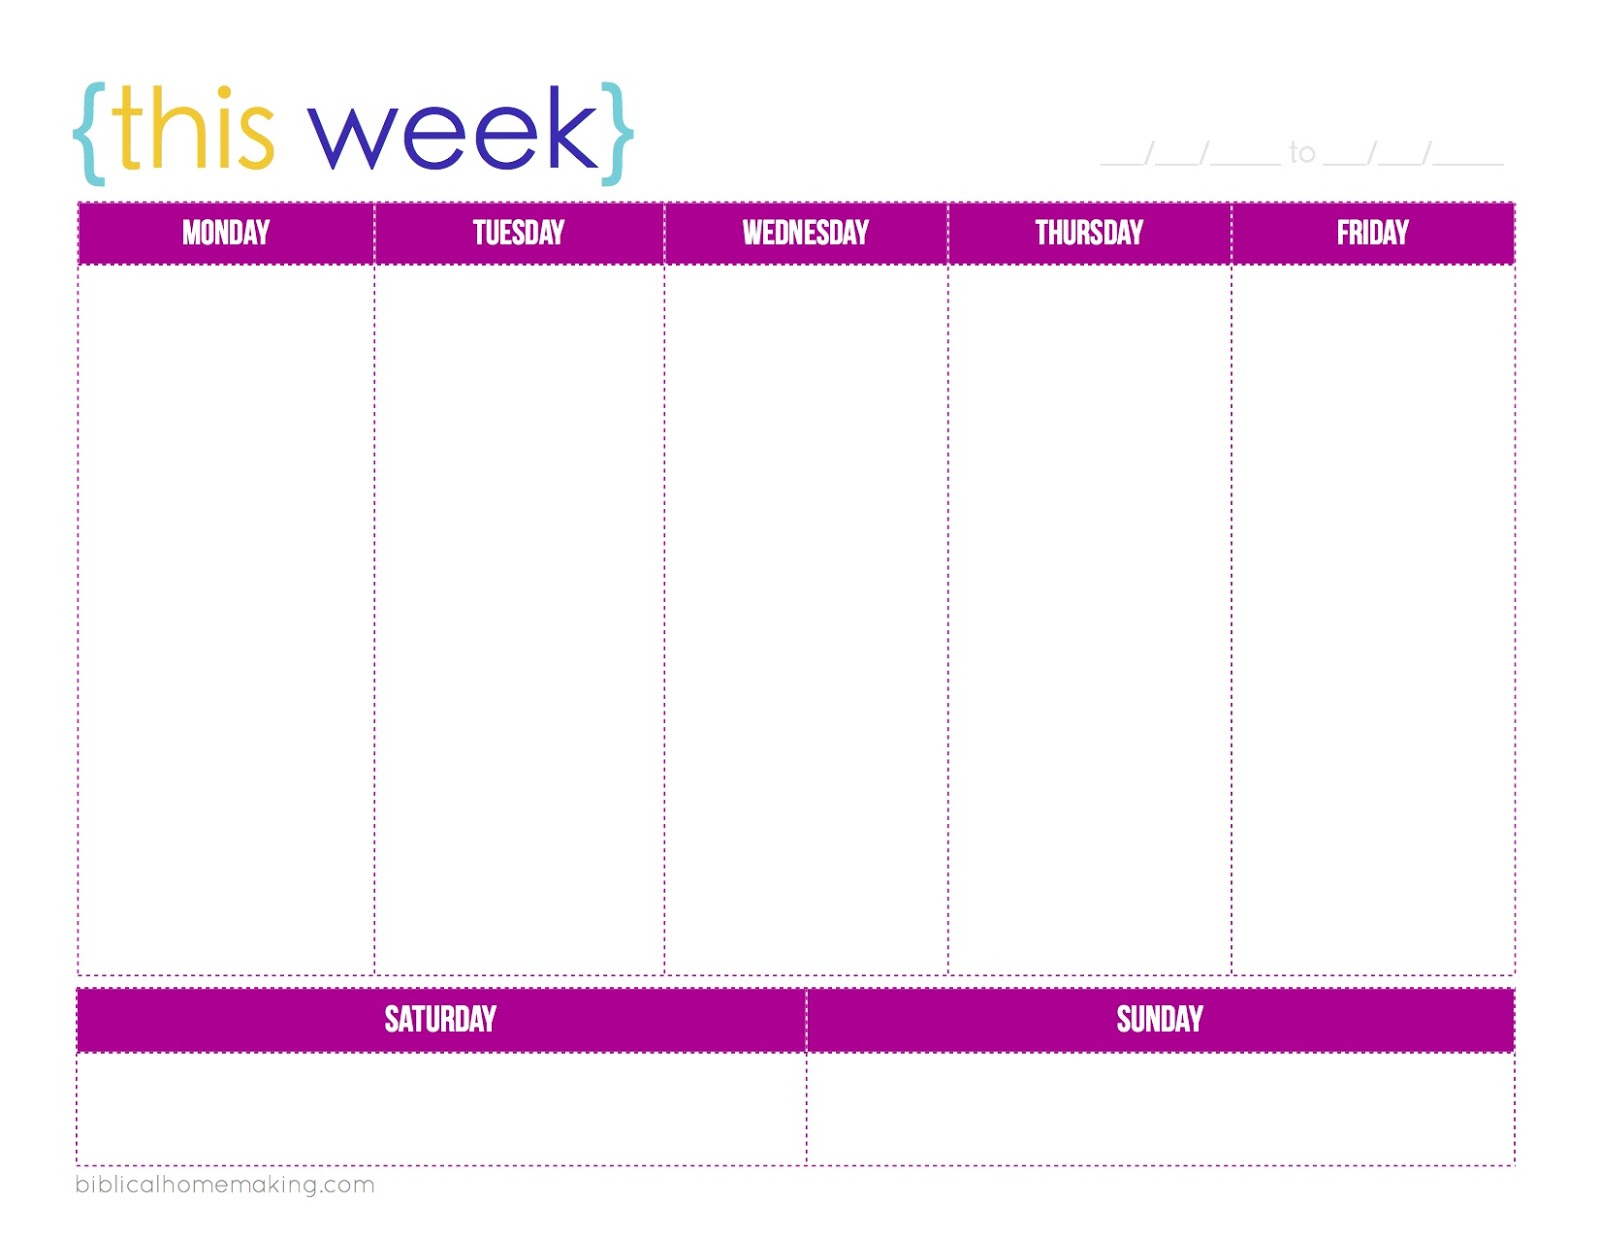 Schedule Template Day Weekly Ar Excel Microsoft Word | Smorad intended for 5 Day Weekly Calendar Template